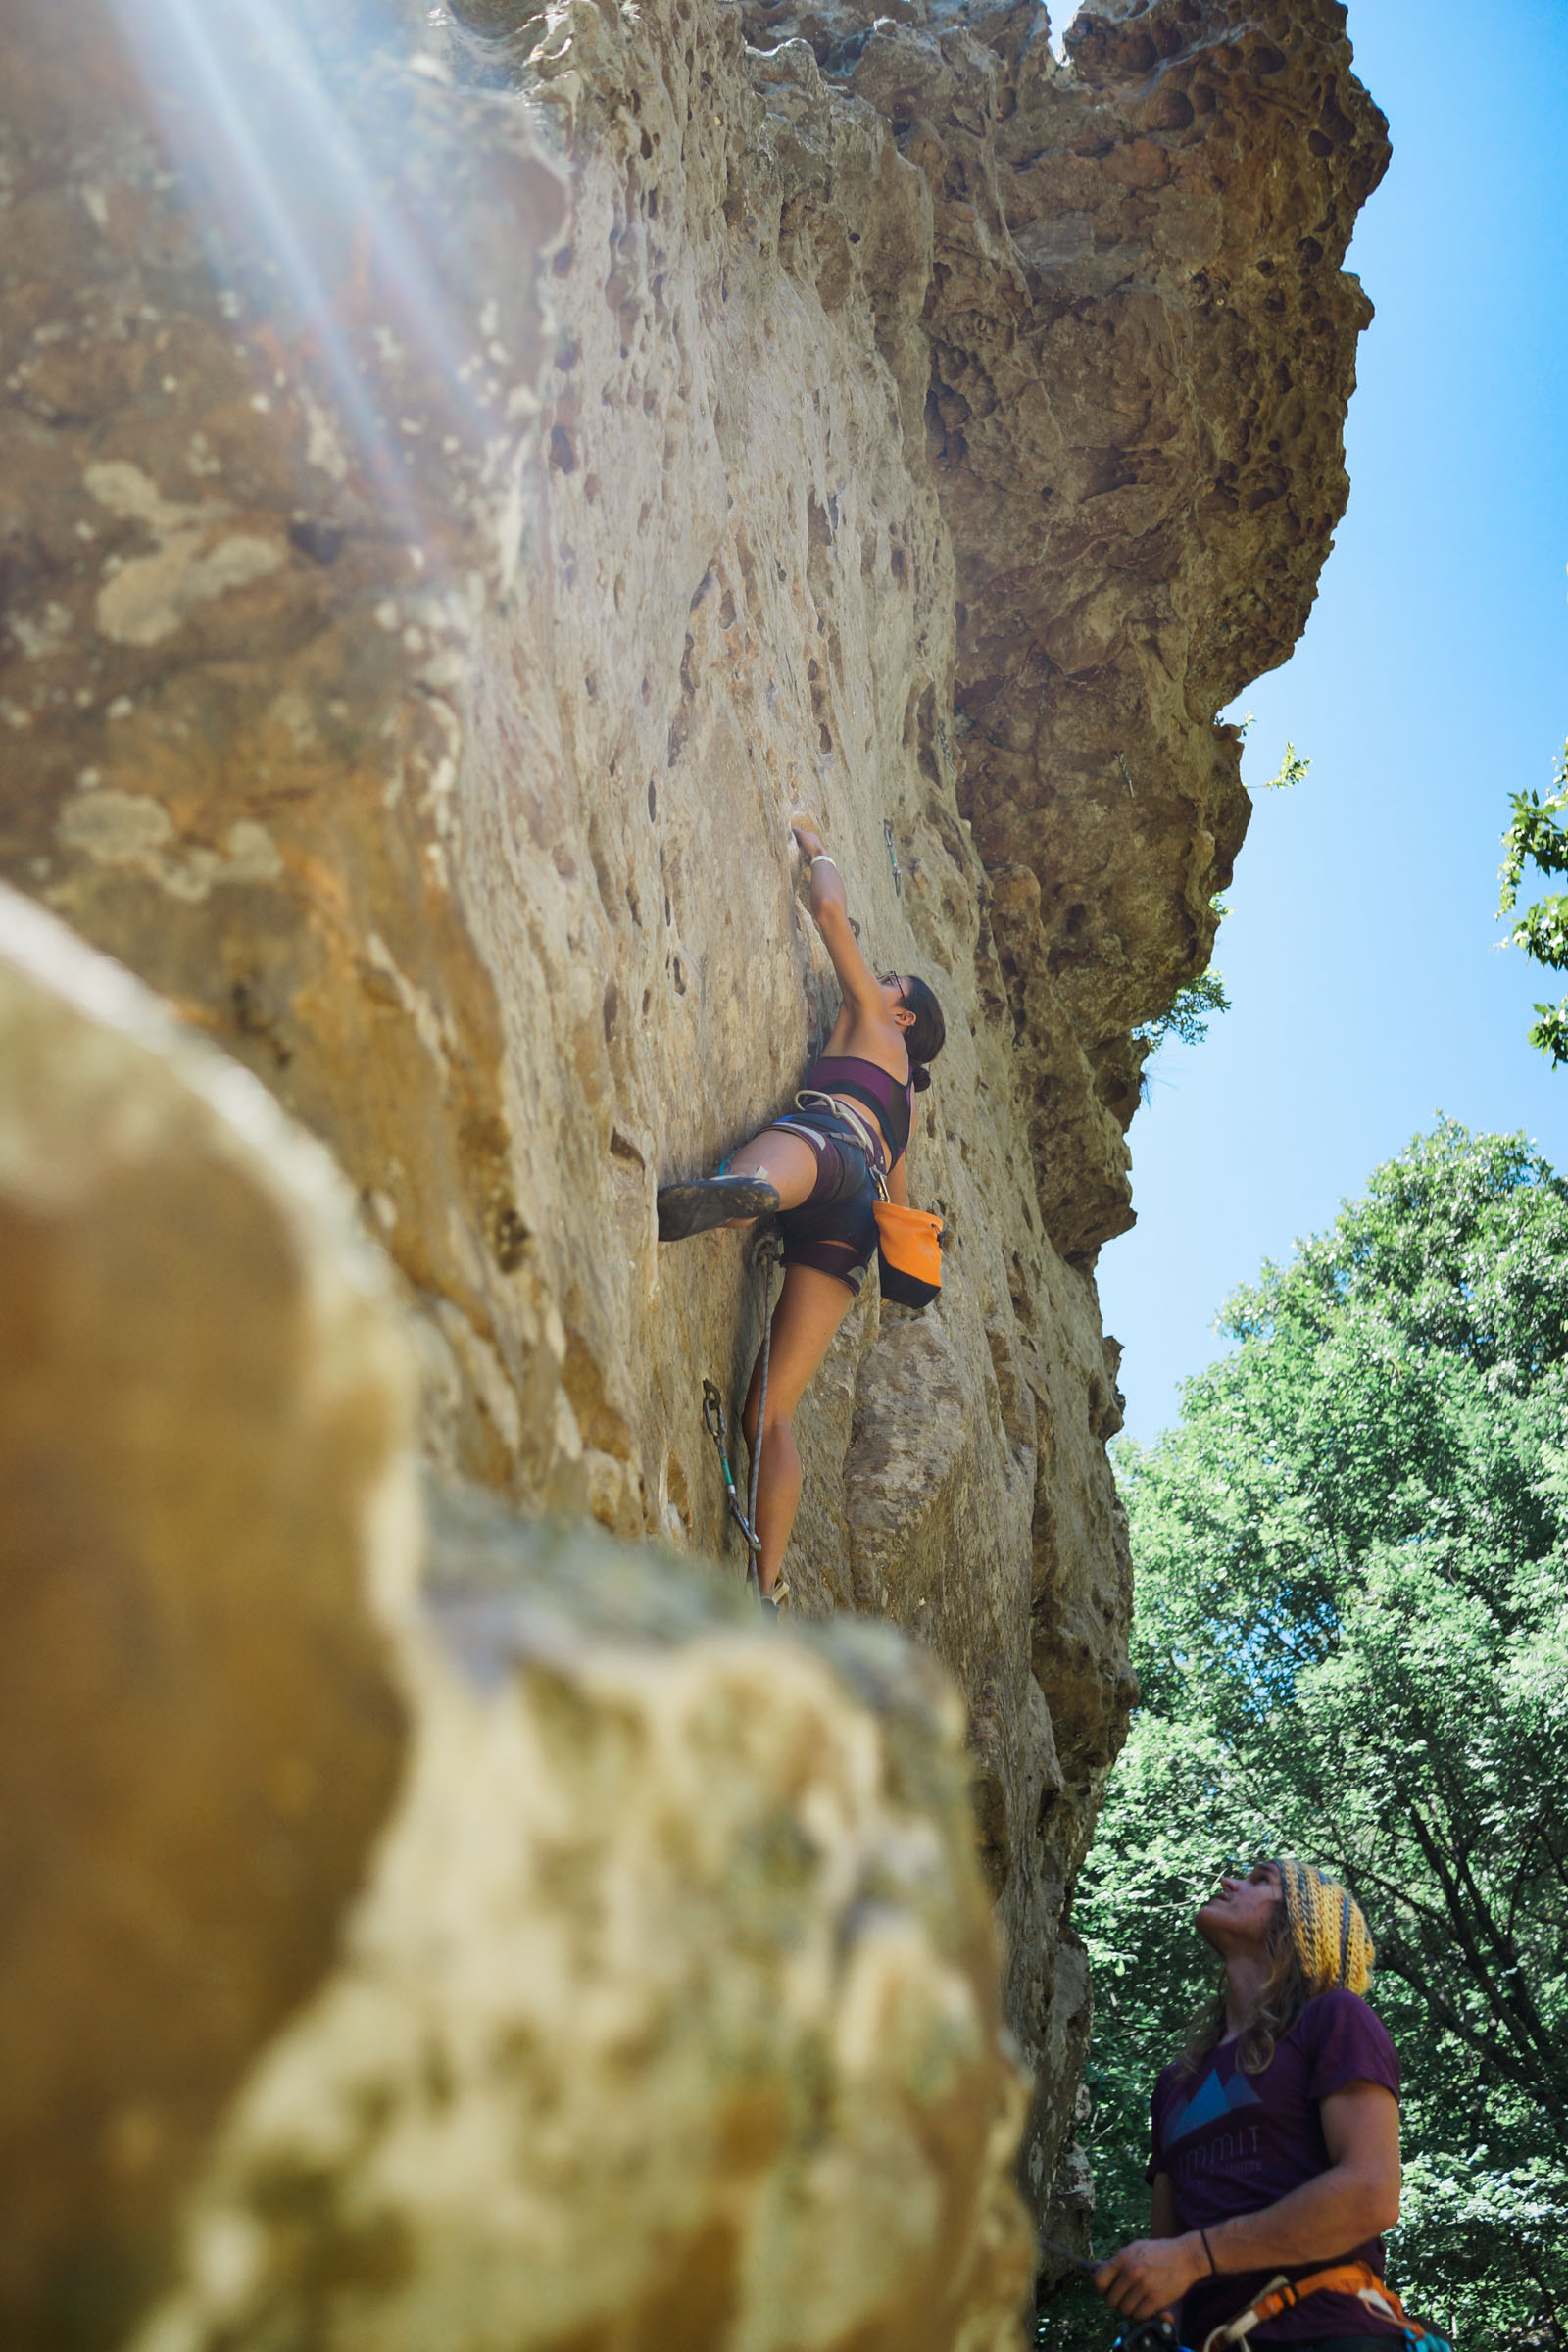 Maria is climbing on Sour Girl 5.10c